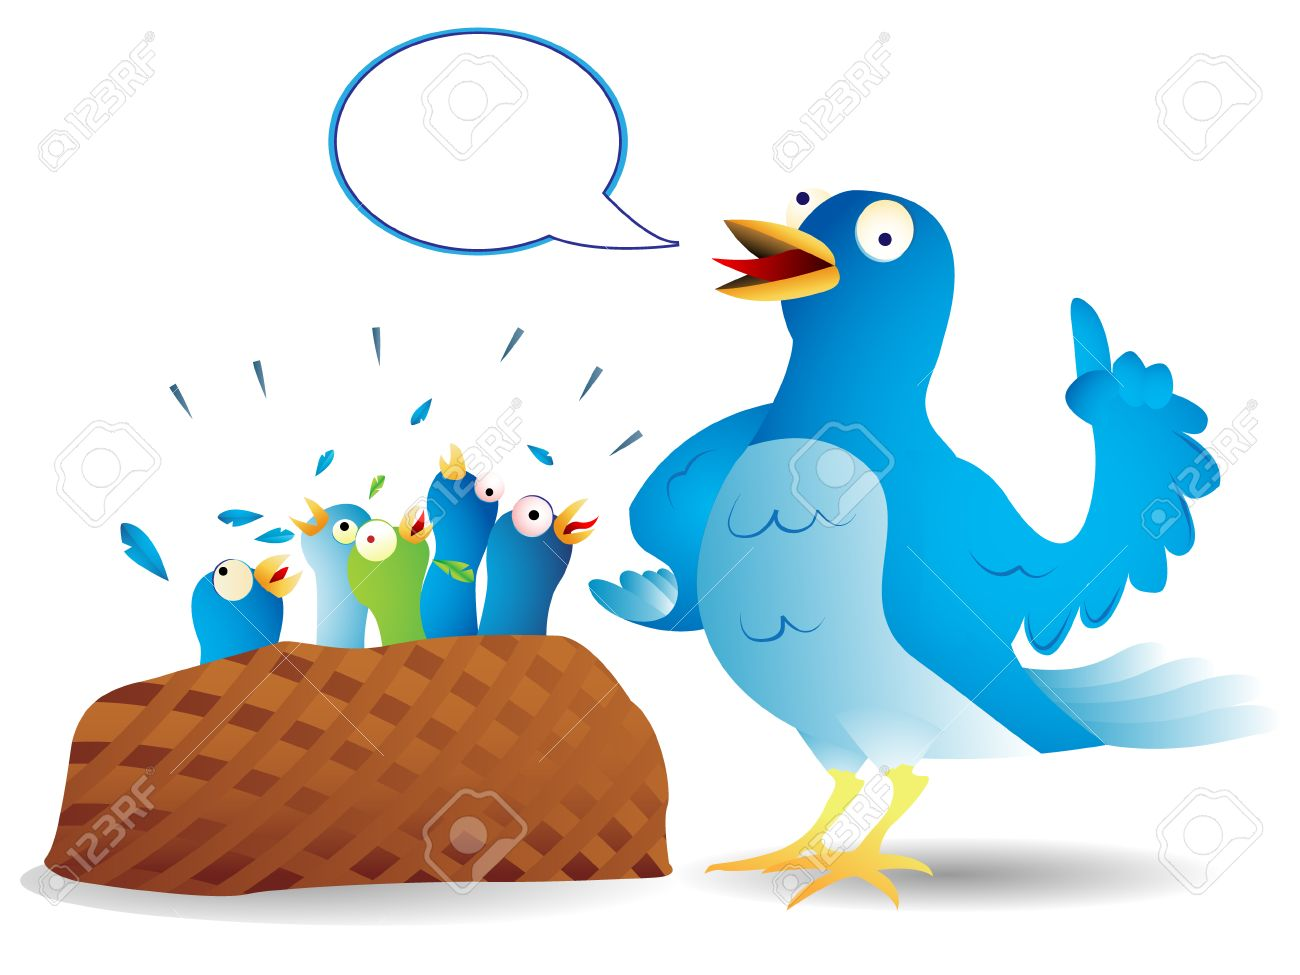 Very talkative twitter bird giving a speech to its hungry kids. Stock Vector - 5737870